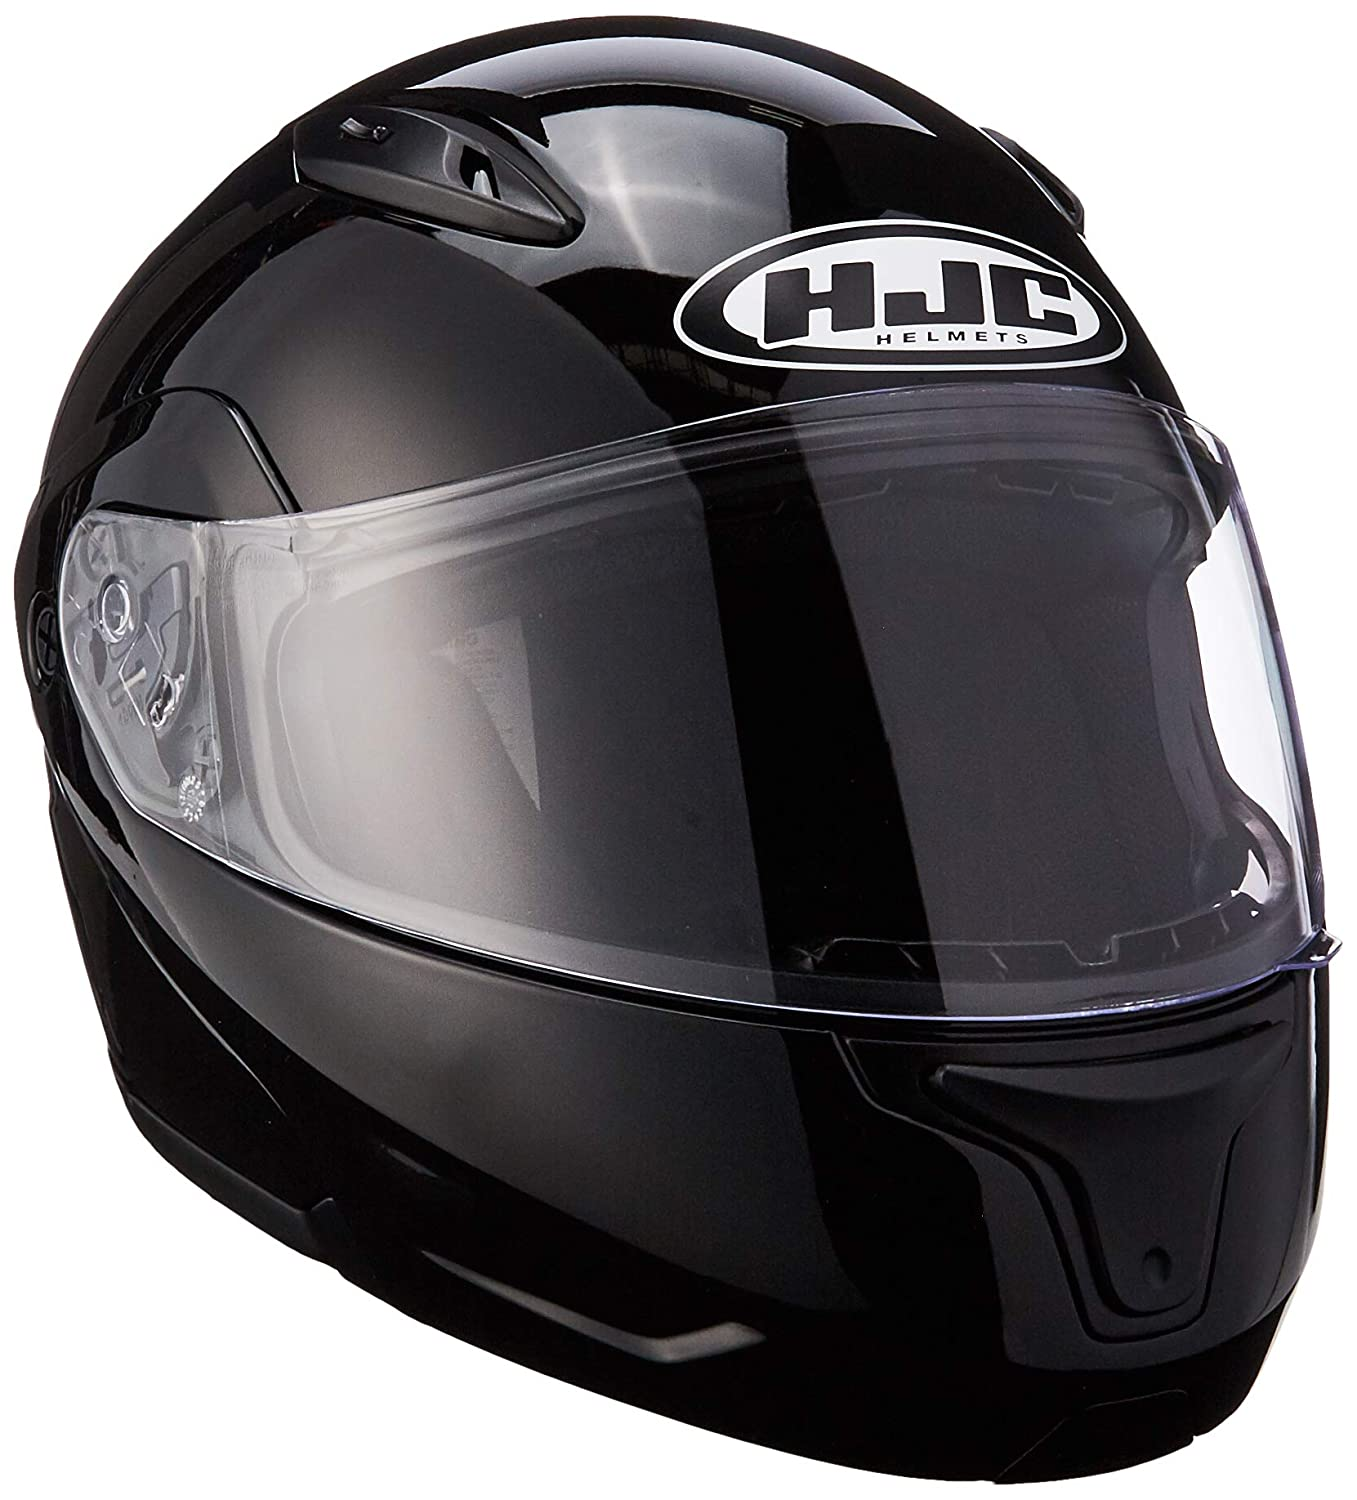 Top 6 Best Bluetooth Motorcycle Helmets (2020 Reviews & Buying Guide) 1